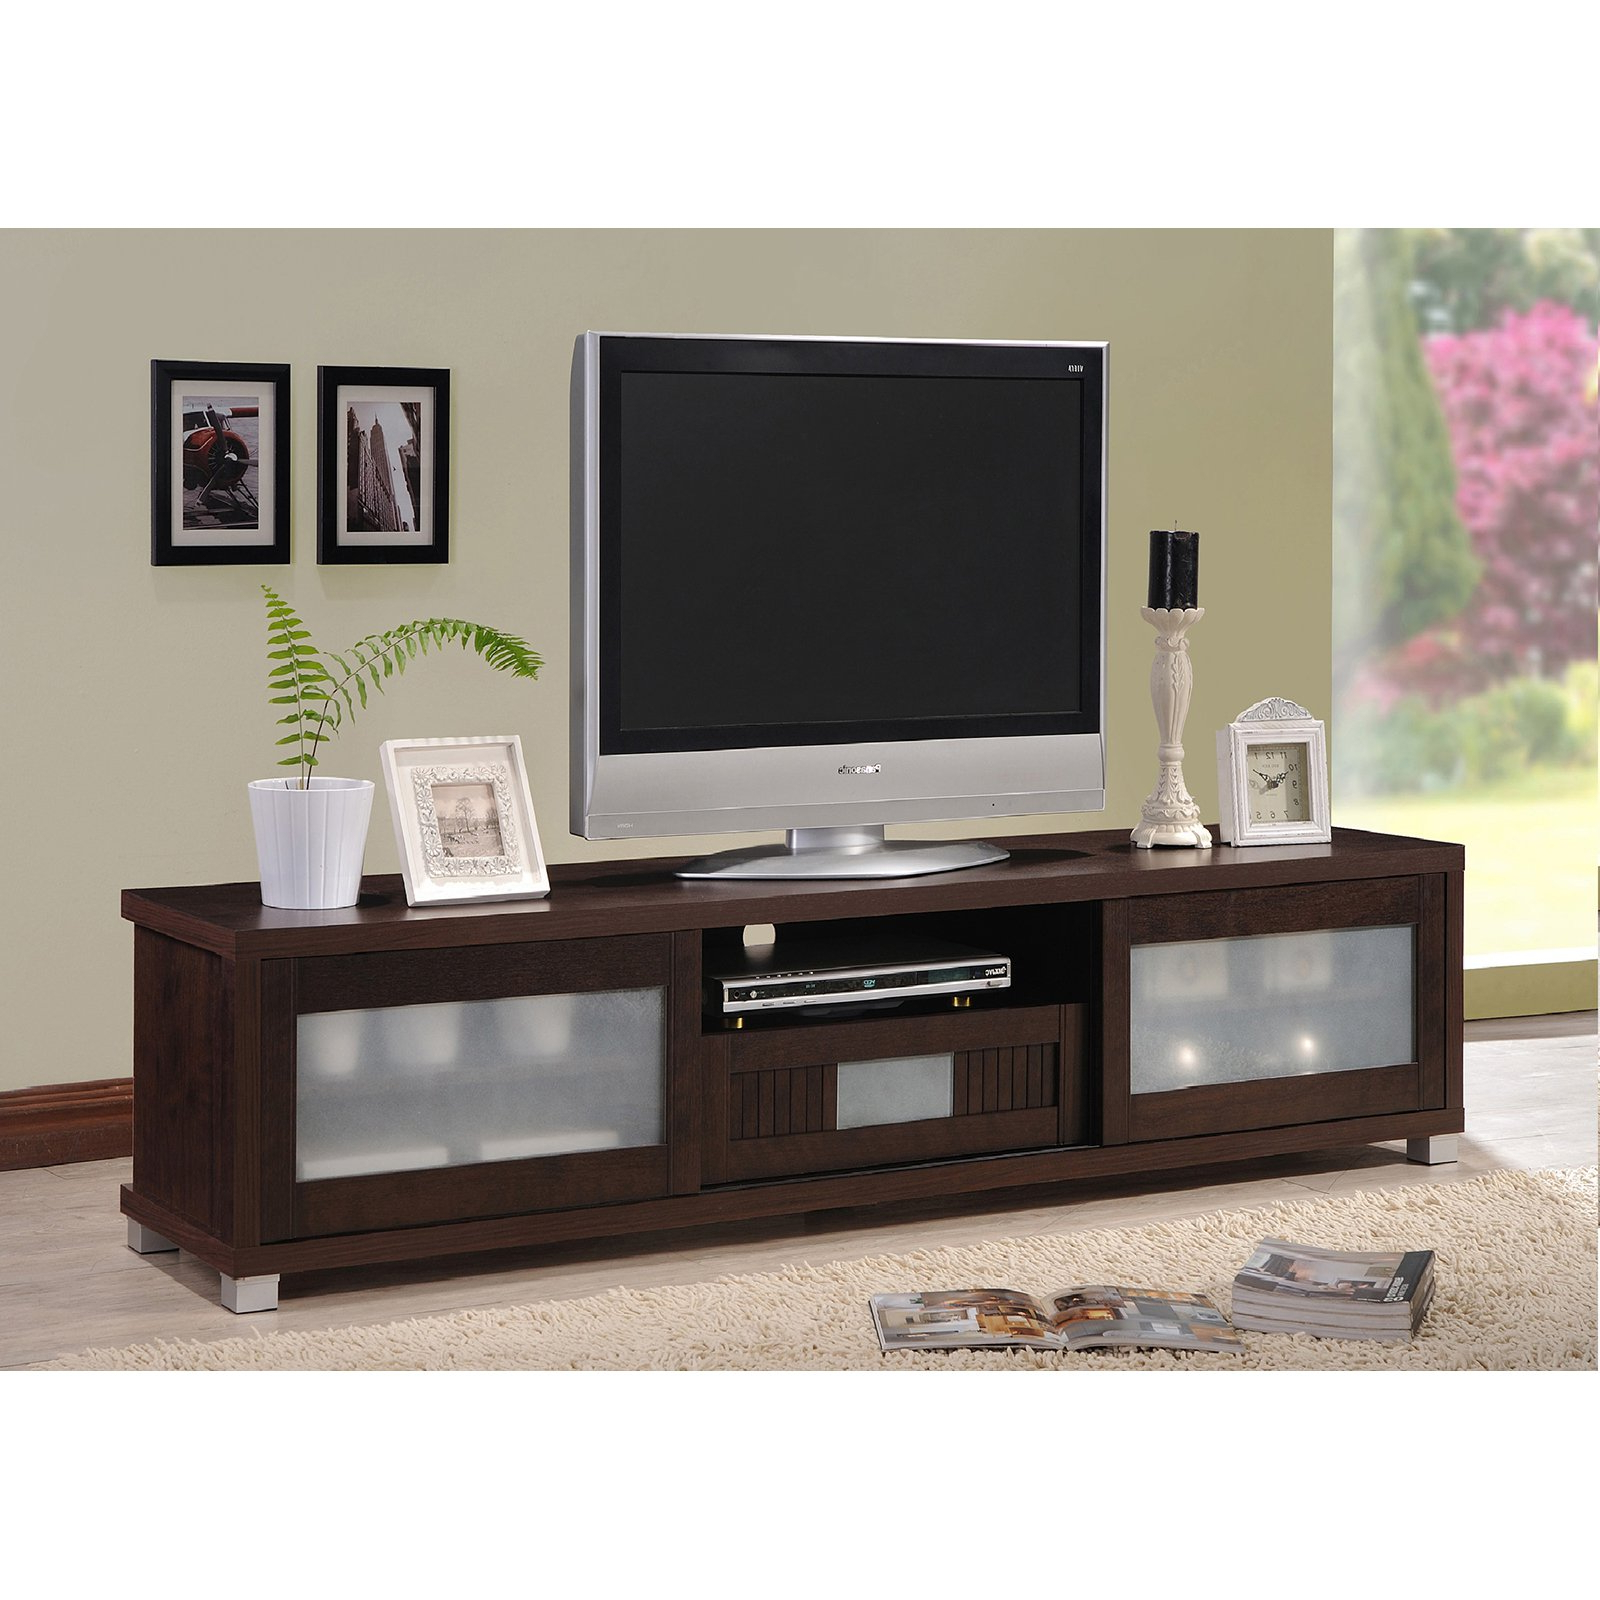 Tv Stands For 70 Inch Tvs Regarding Most Up To Date Tv Stand 70 Inch Target With Ikea Plus White Fireplace Together (View 7 of 20)